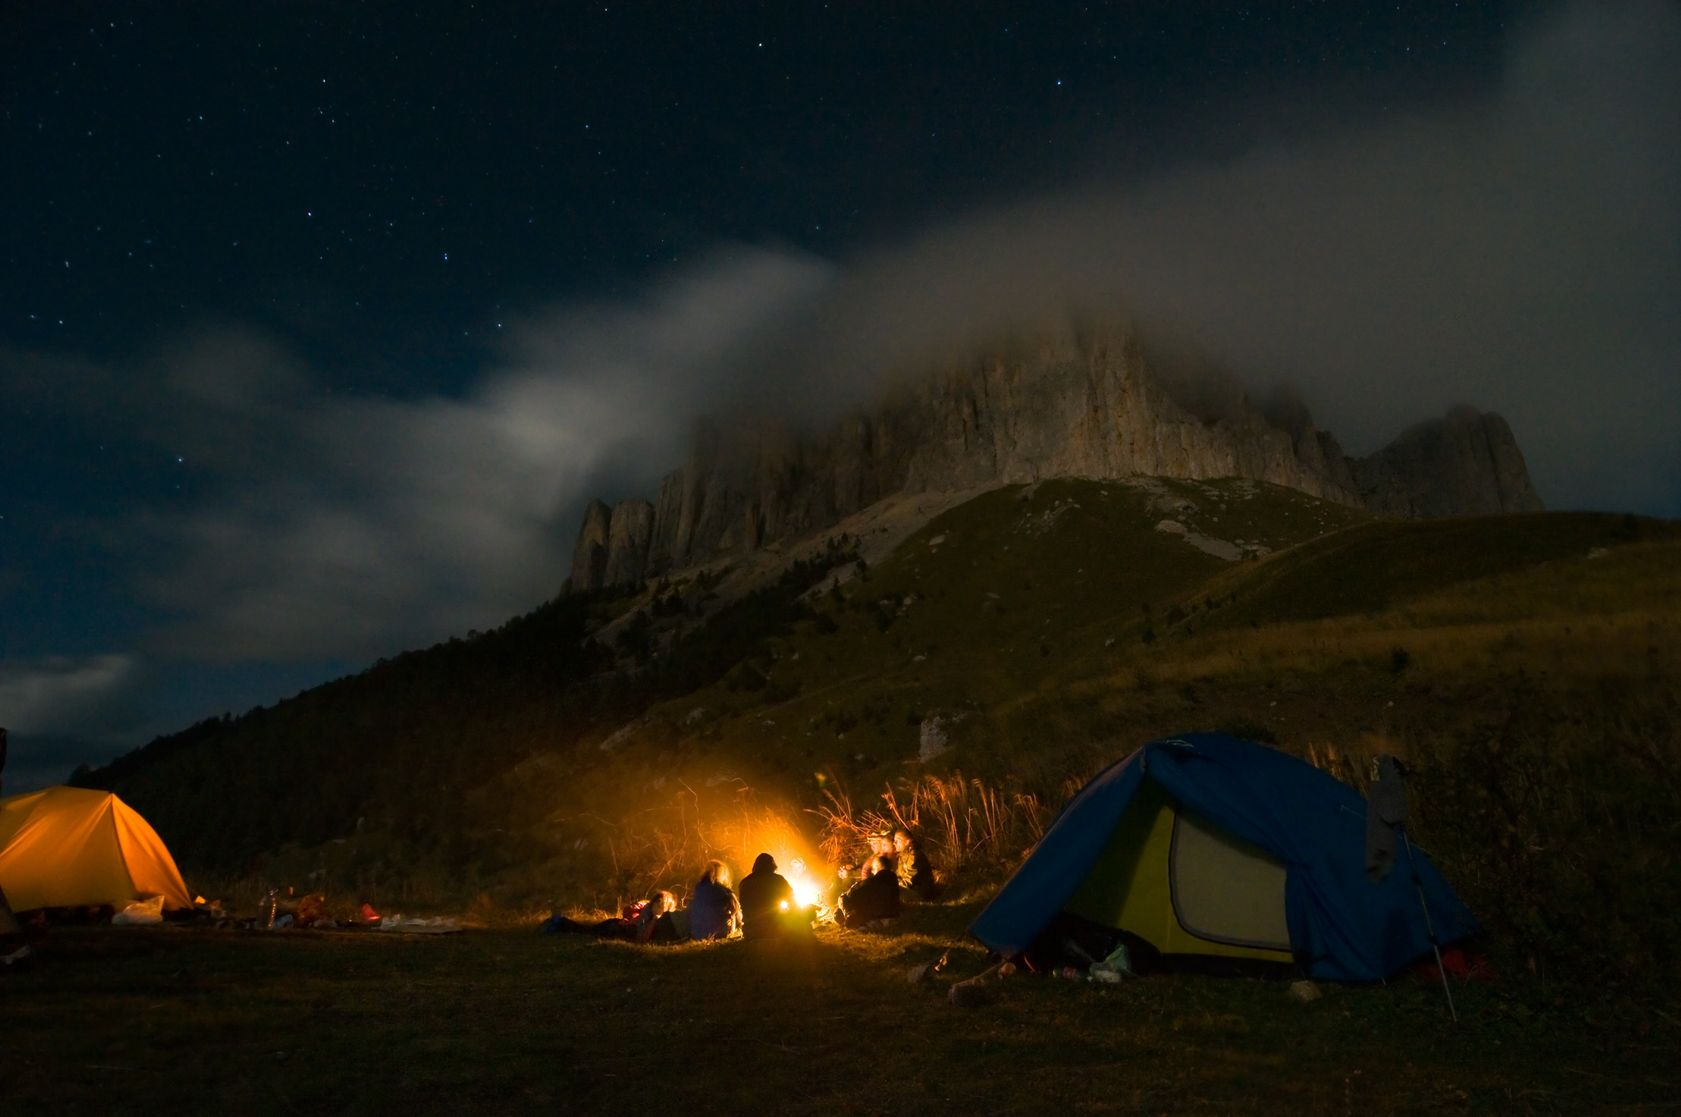 Camping at night  https://www.info-on-high-blood-pressure.com/Circadian-Rhythms.html